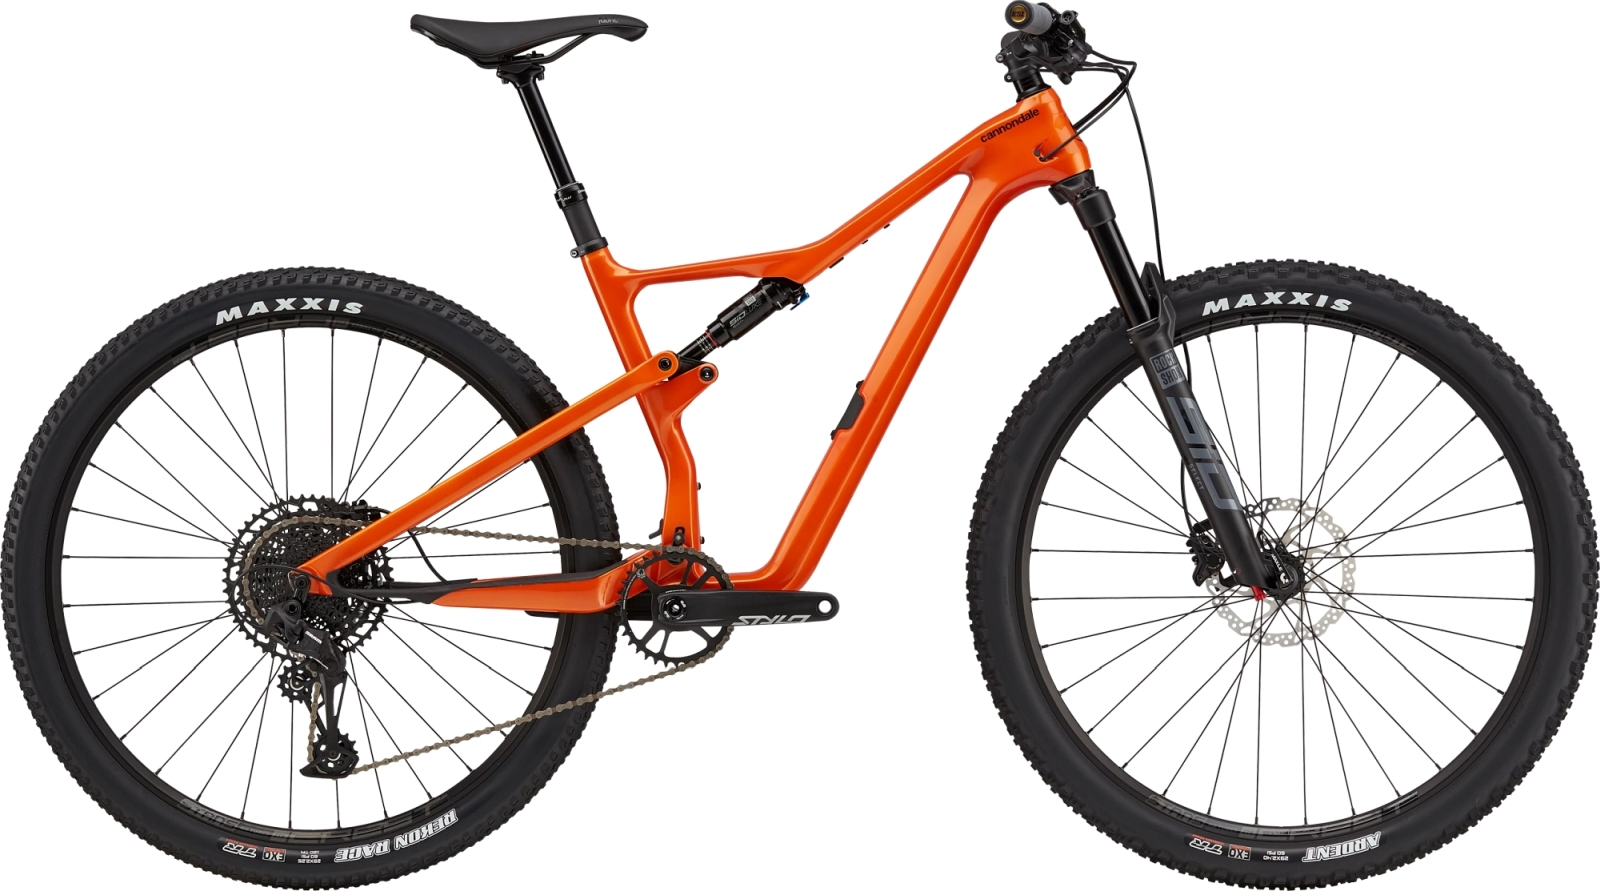 Cannondale Scalpel Carbon SE 2 - Saber XL